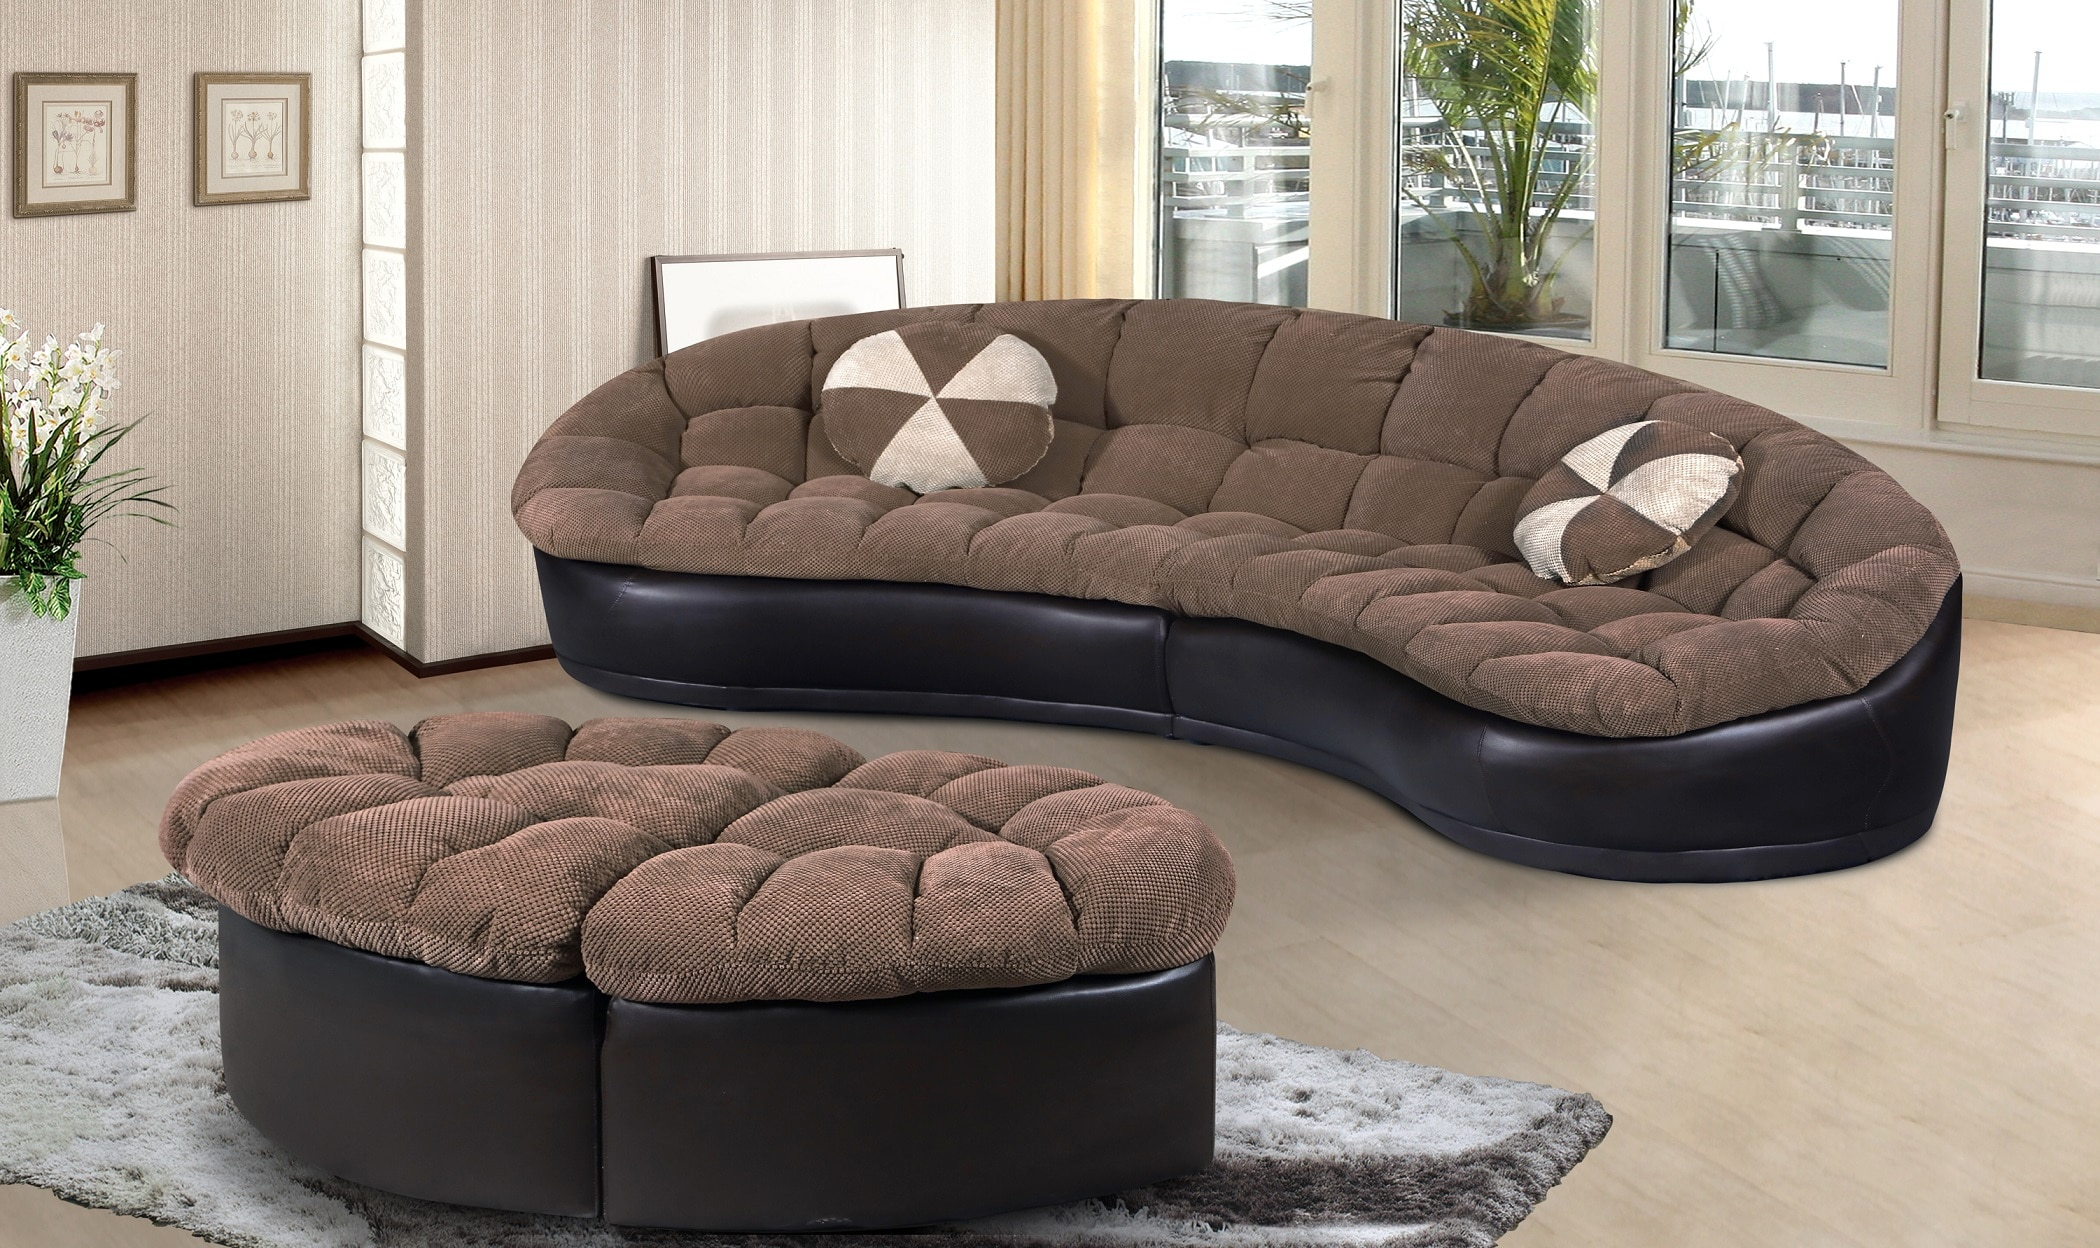 2Pc Chenille And Black Faux Leather Sectional With Ottomans